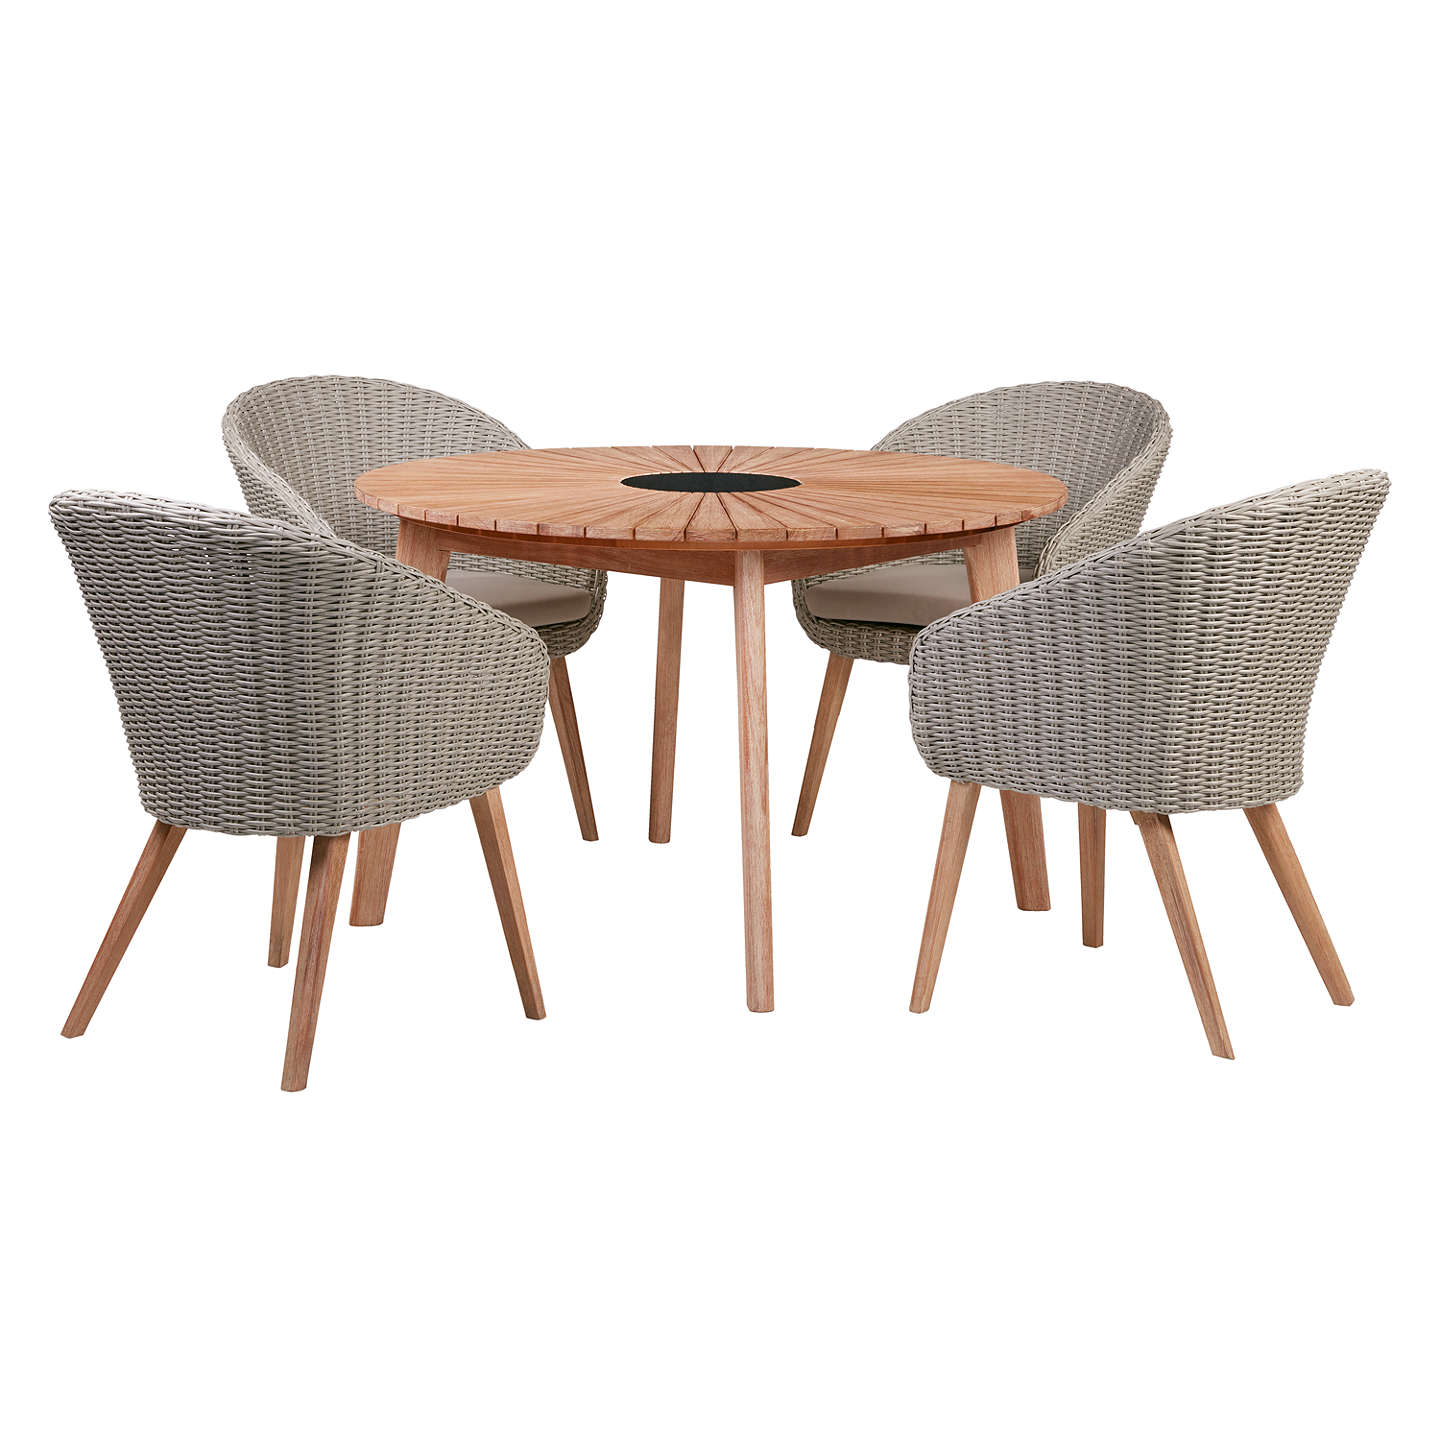 BuyJohn Lewis Sol 4 Seater Round Garden Dining Table Chairs Set FSC Certified